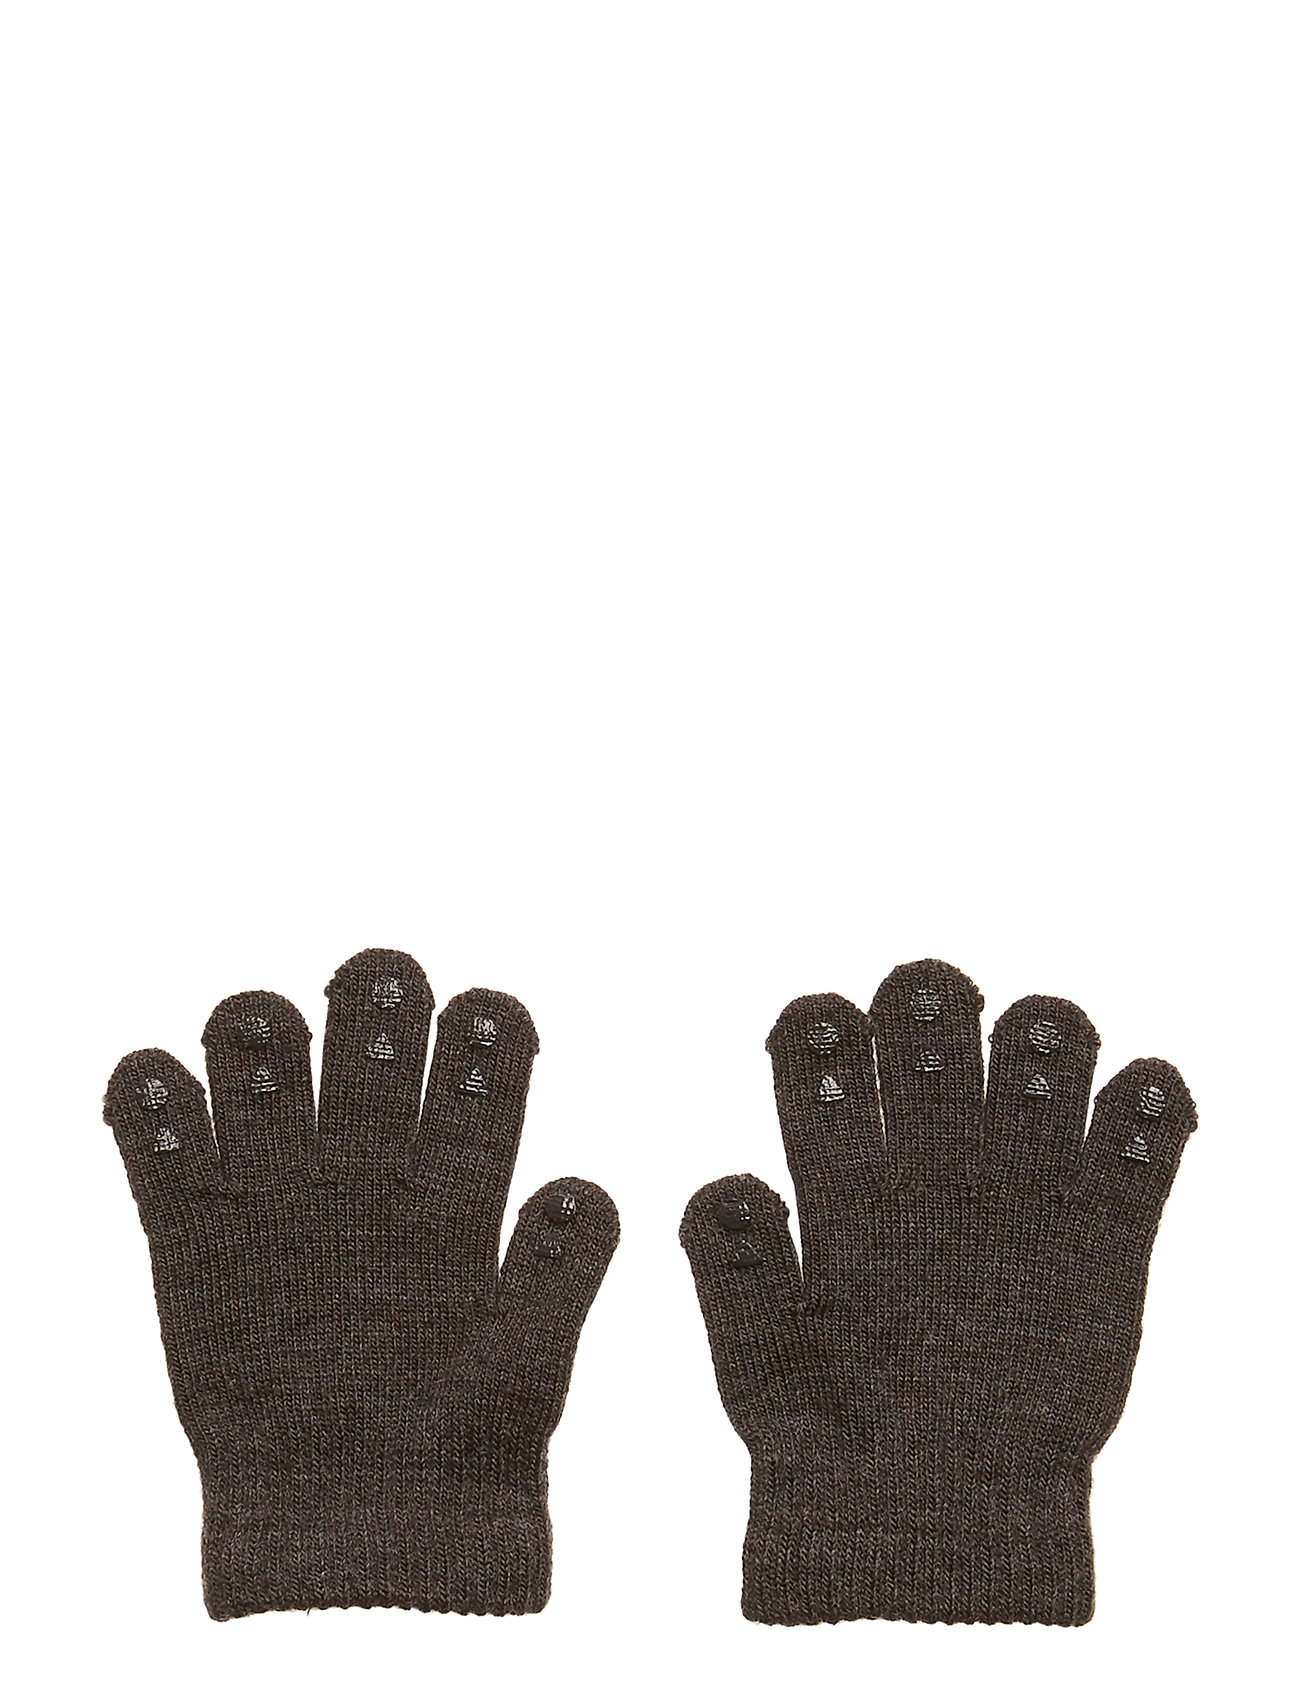 GoBabyGo Wool Grip Gloves - DARK GREY MéLANGE